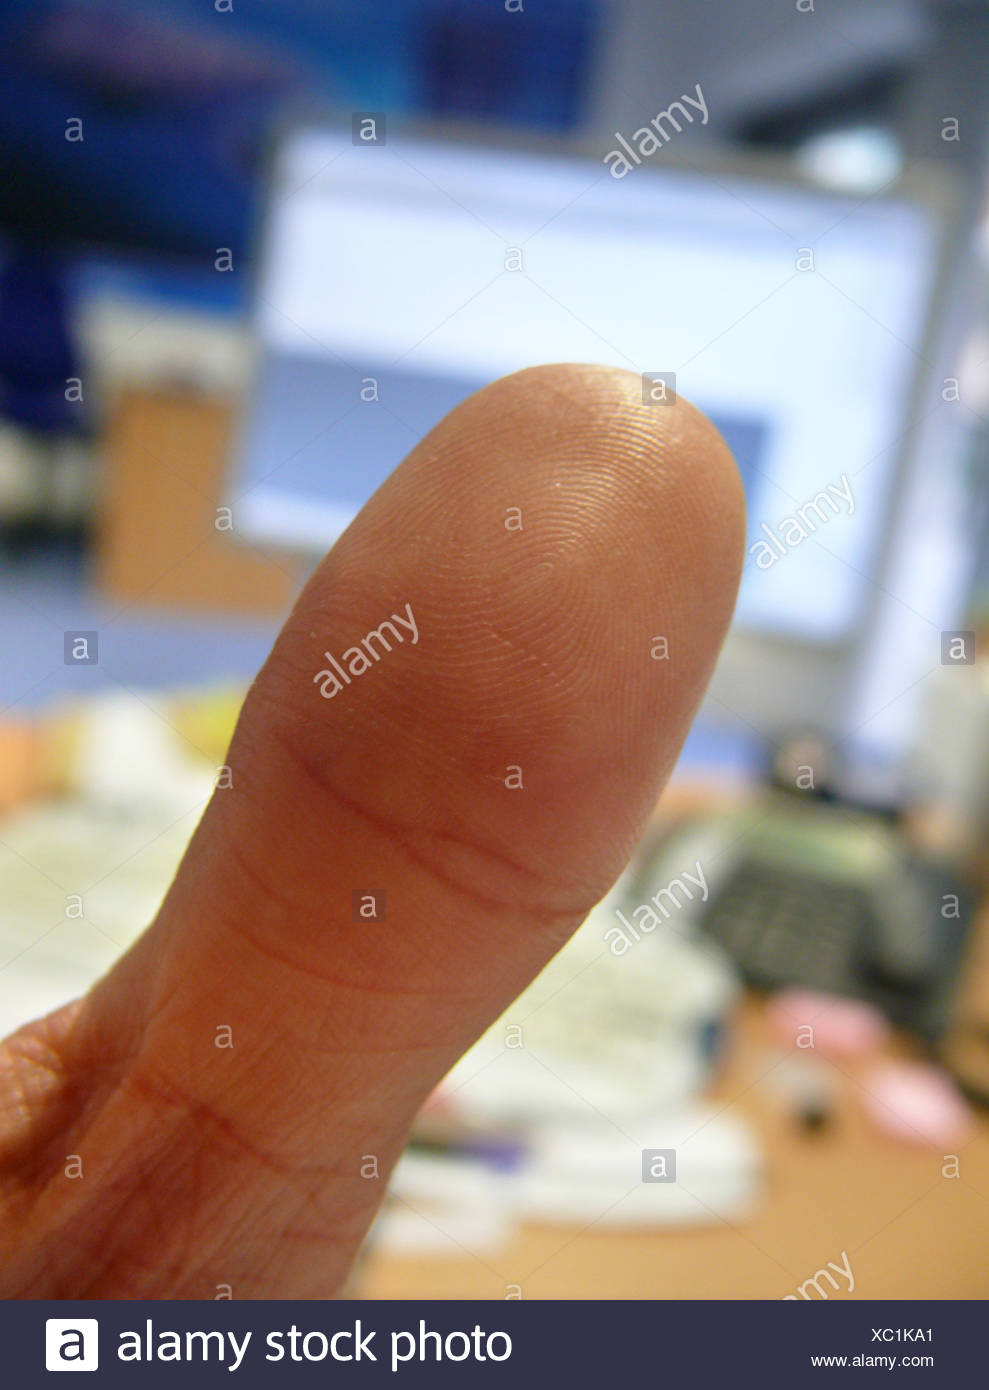 thumb in front of a computer monitor - Stock Image